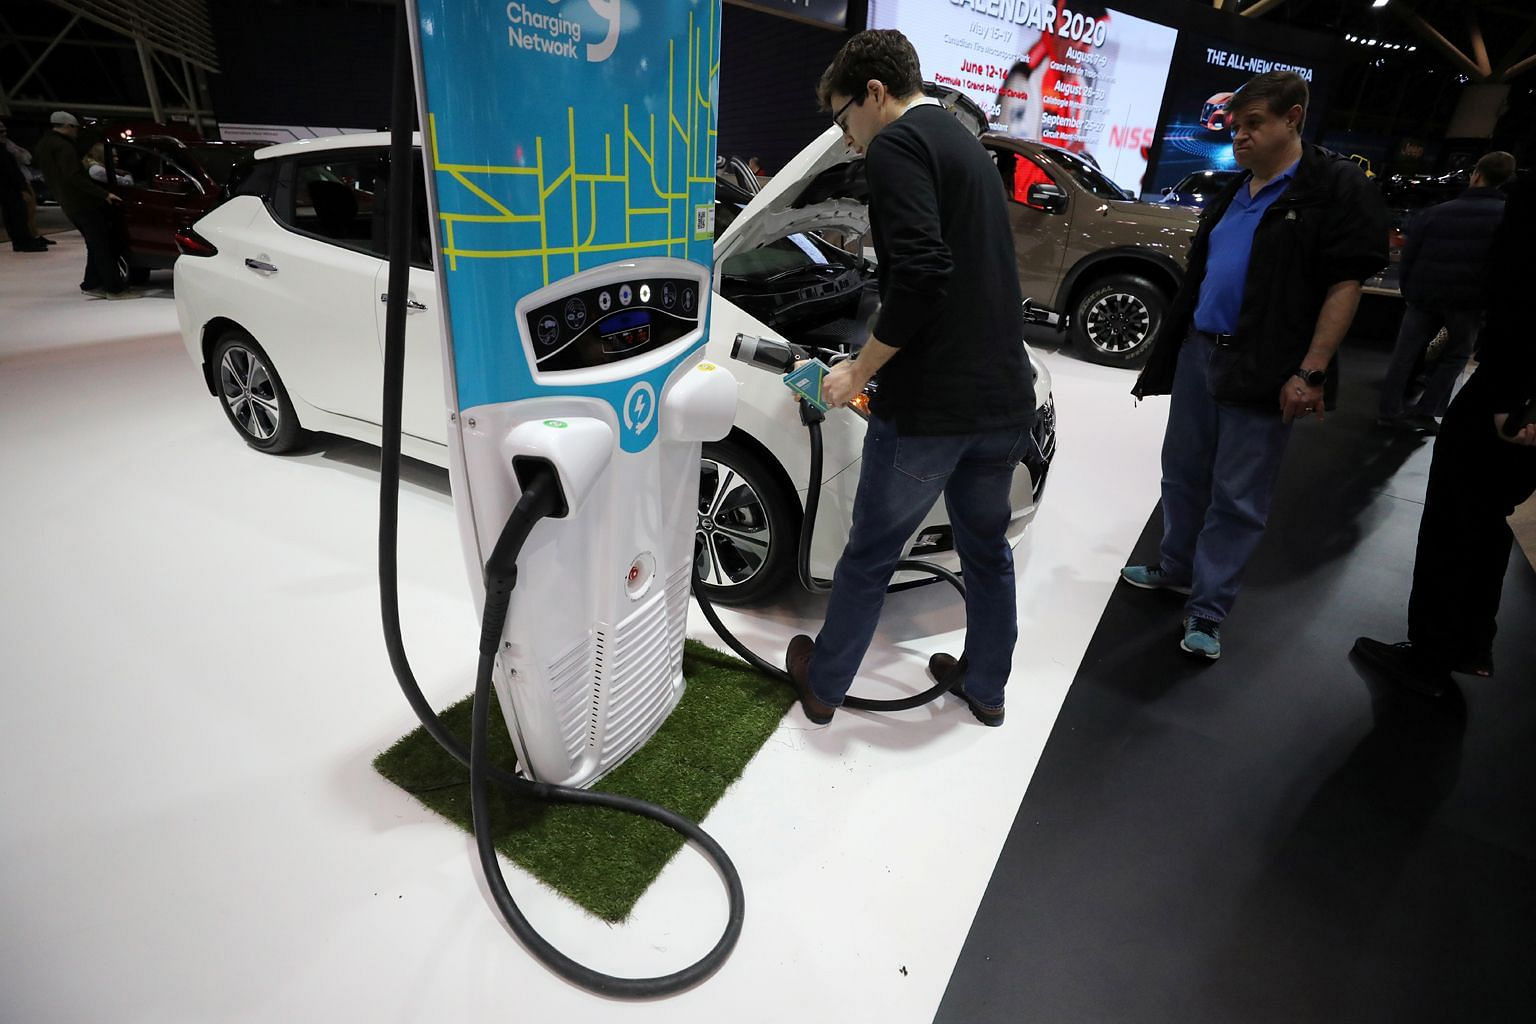 Electric cars like the Nissan Leaf (above) cost less to operate than conventional ones as electricity is far cheaper than petrol. These vehicles also cost less to maintain because they have fewer parts and less fluids.